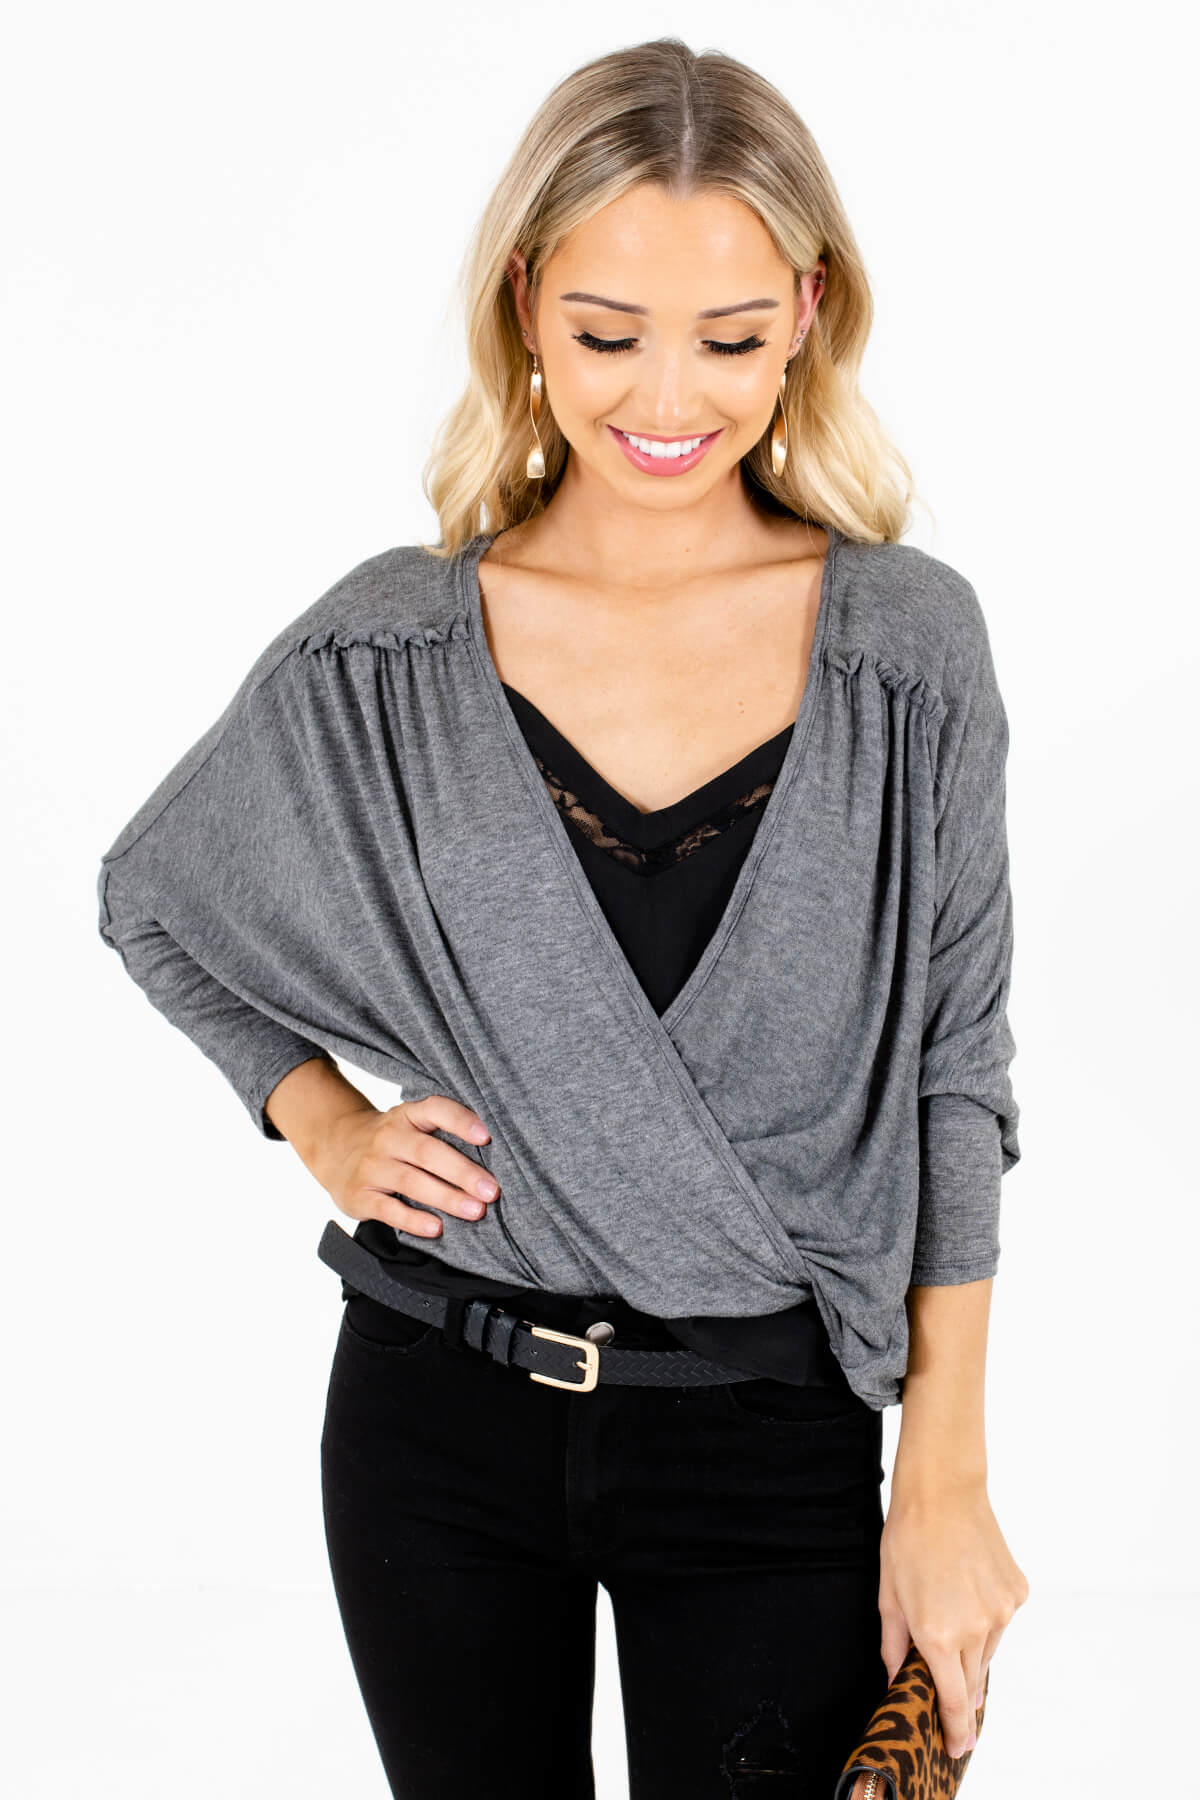 Heather Gray Wrap Style Boutique Tops for Women